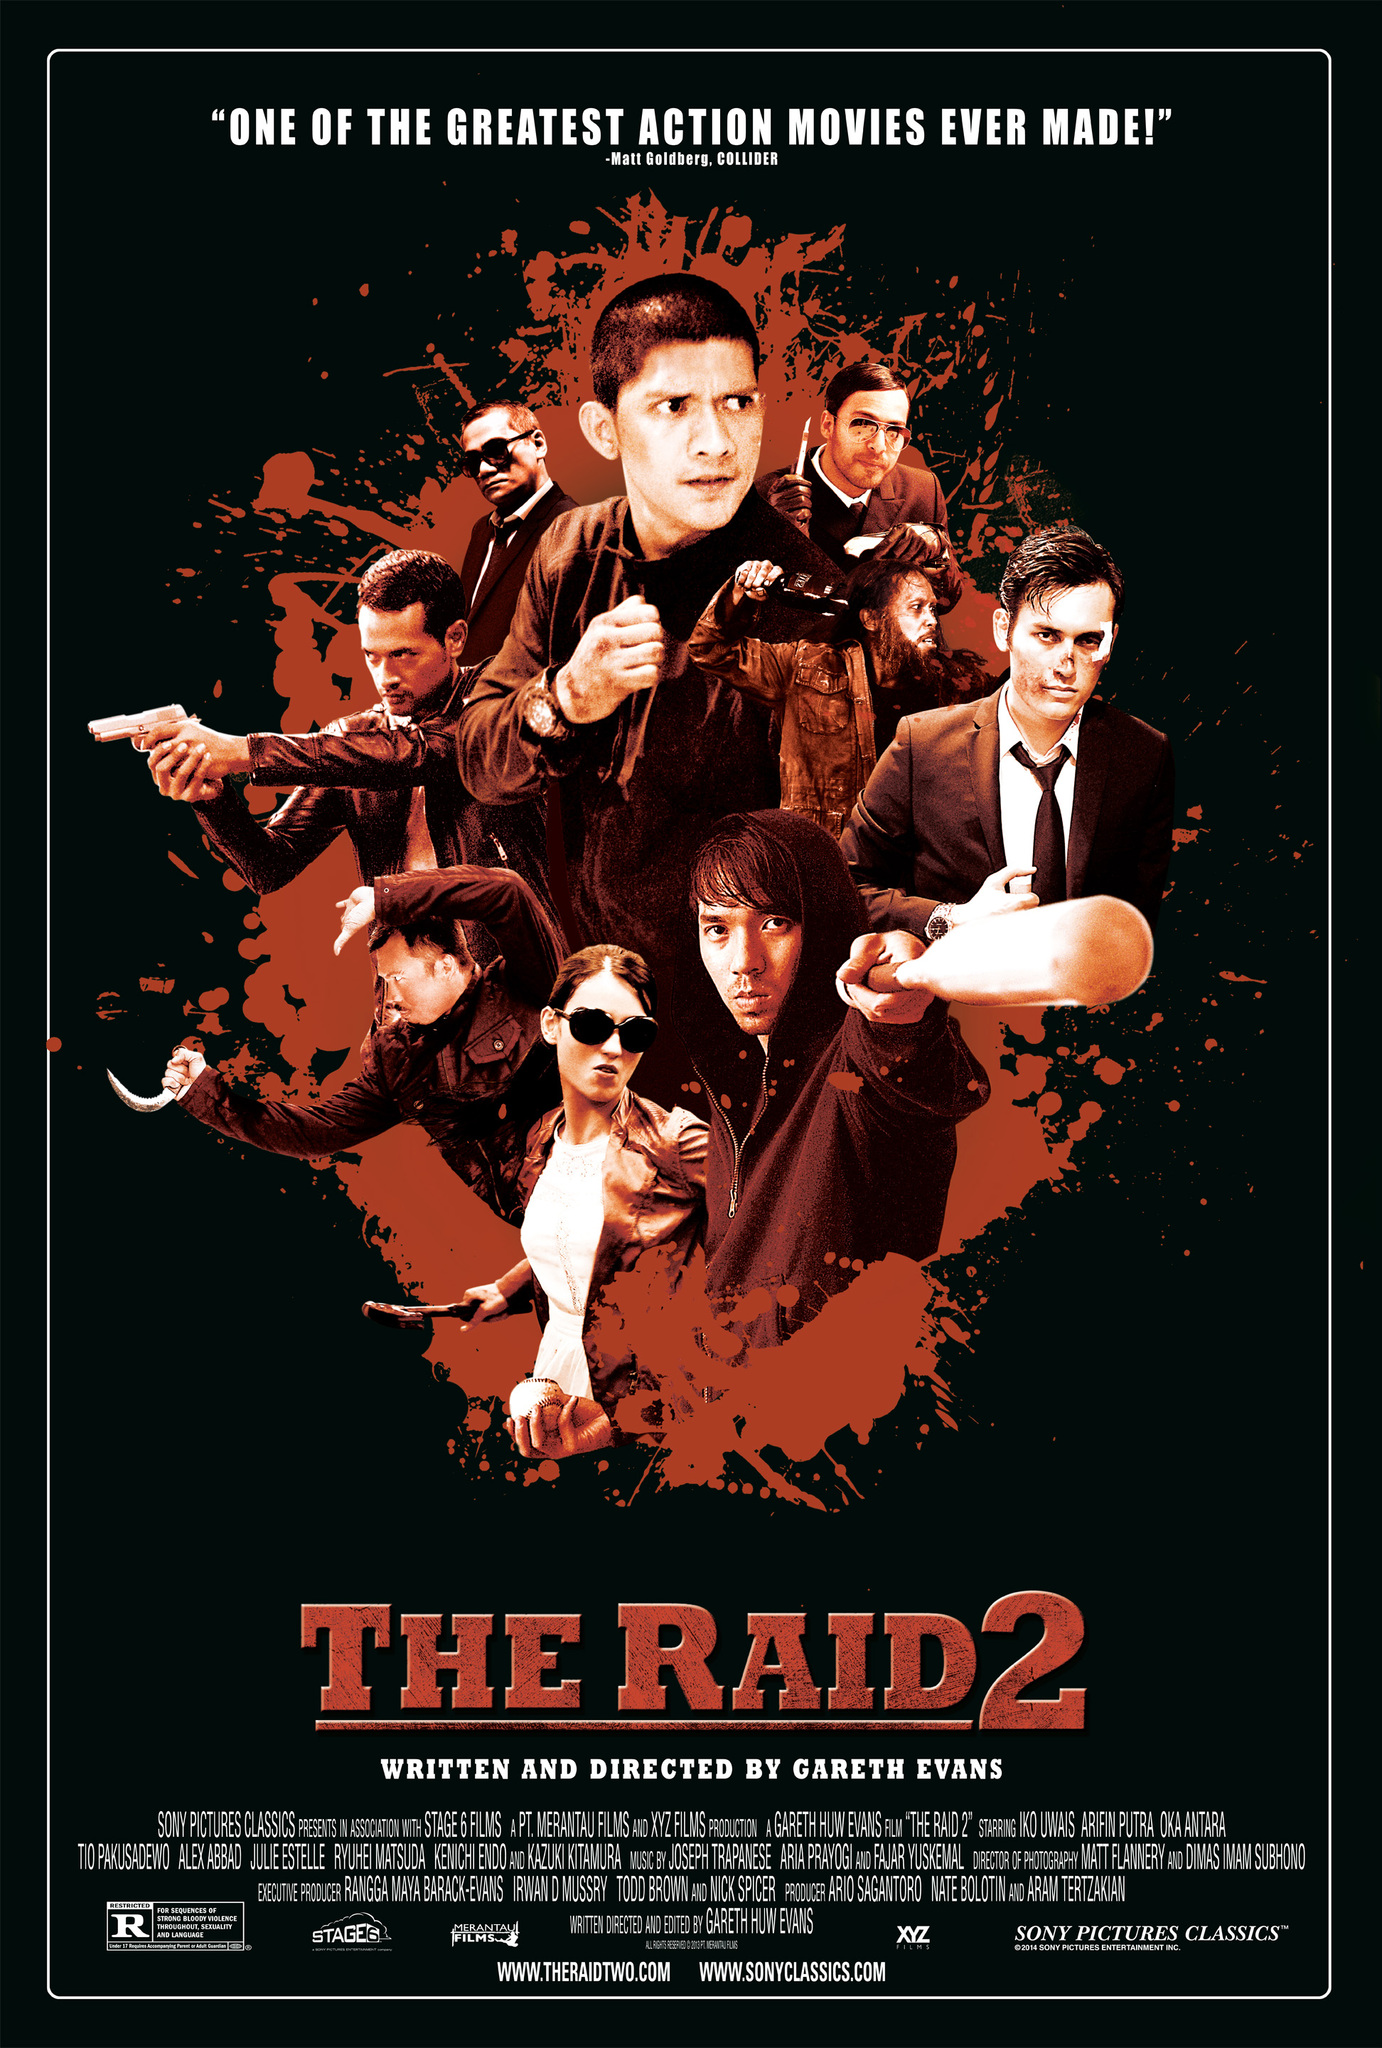 the raid 2 full movie in hindi download utorrent